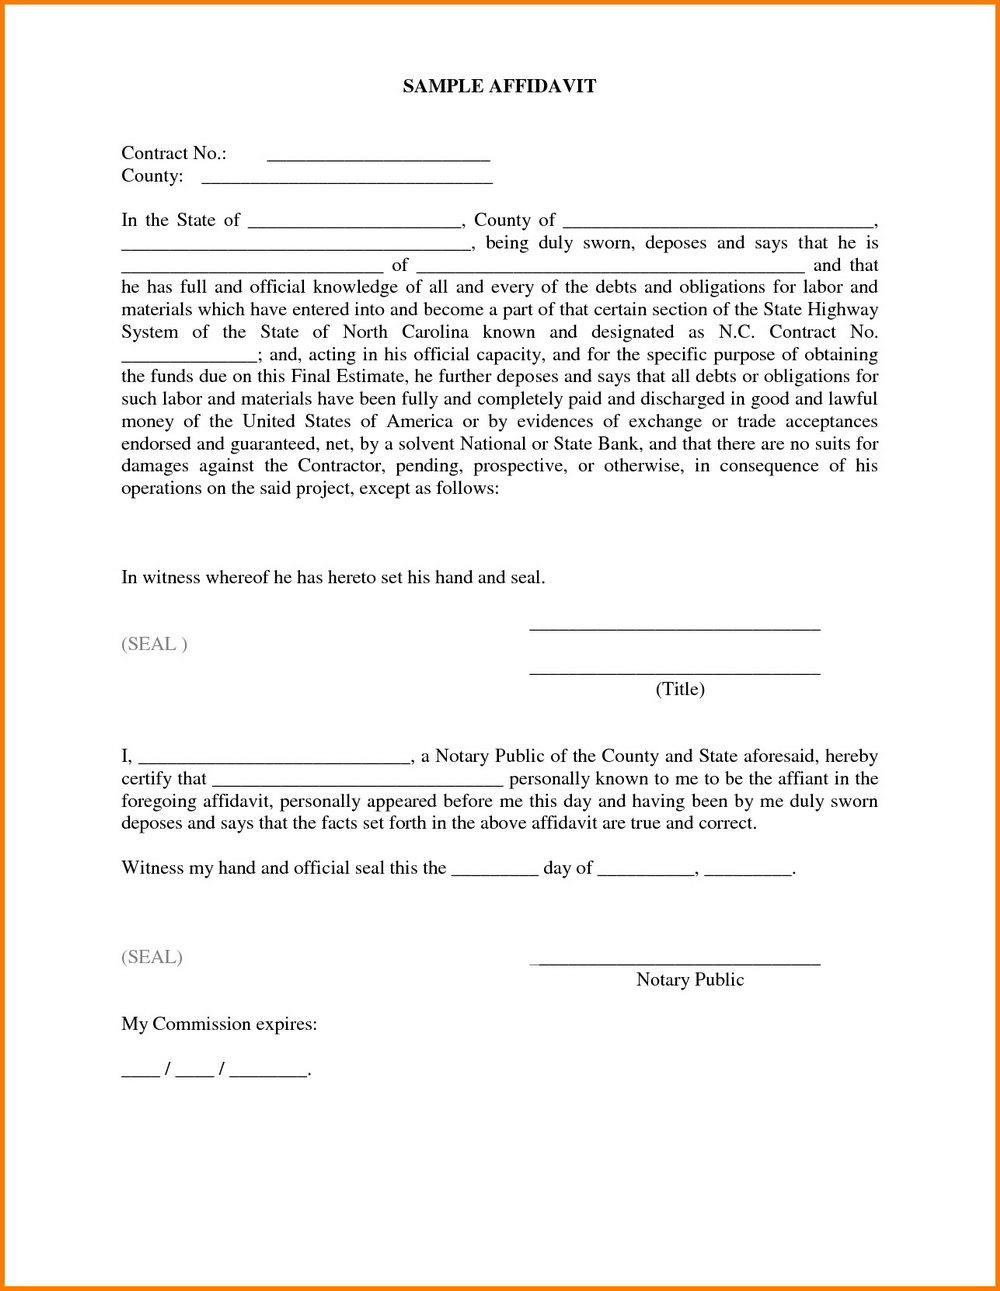 Sworn Affidavit Template Word